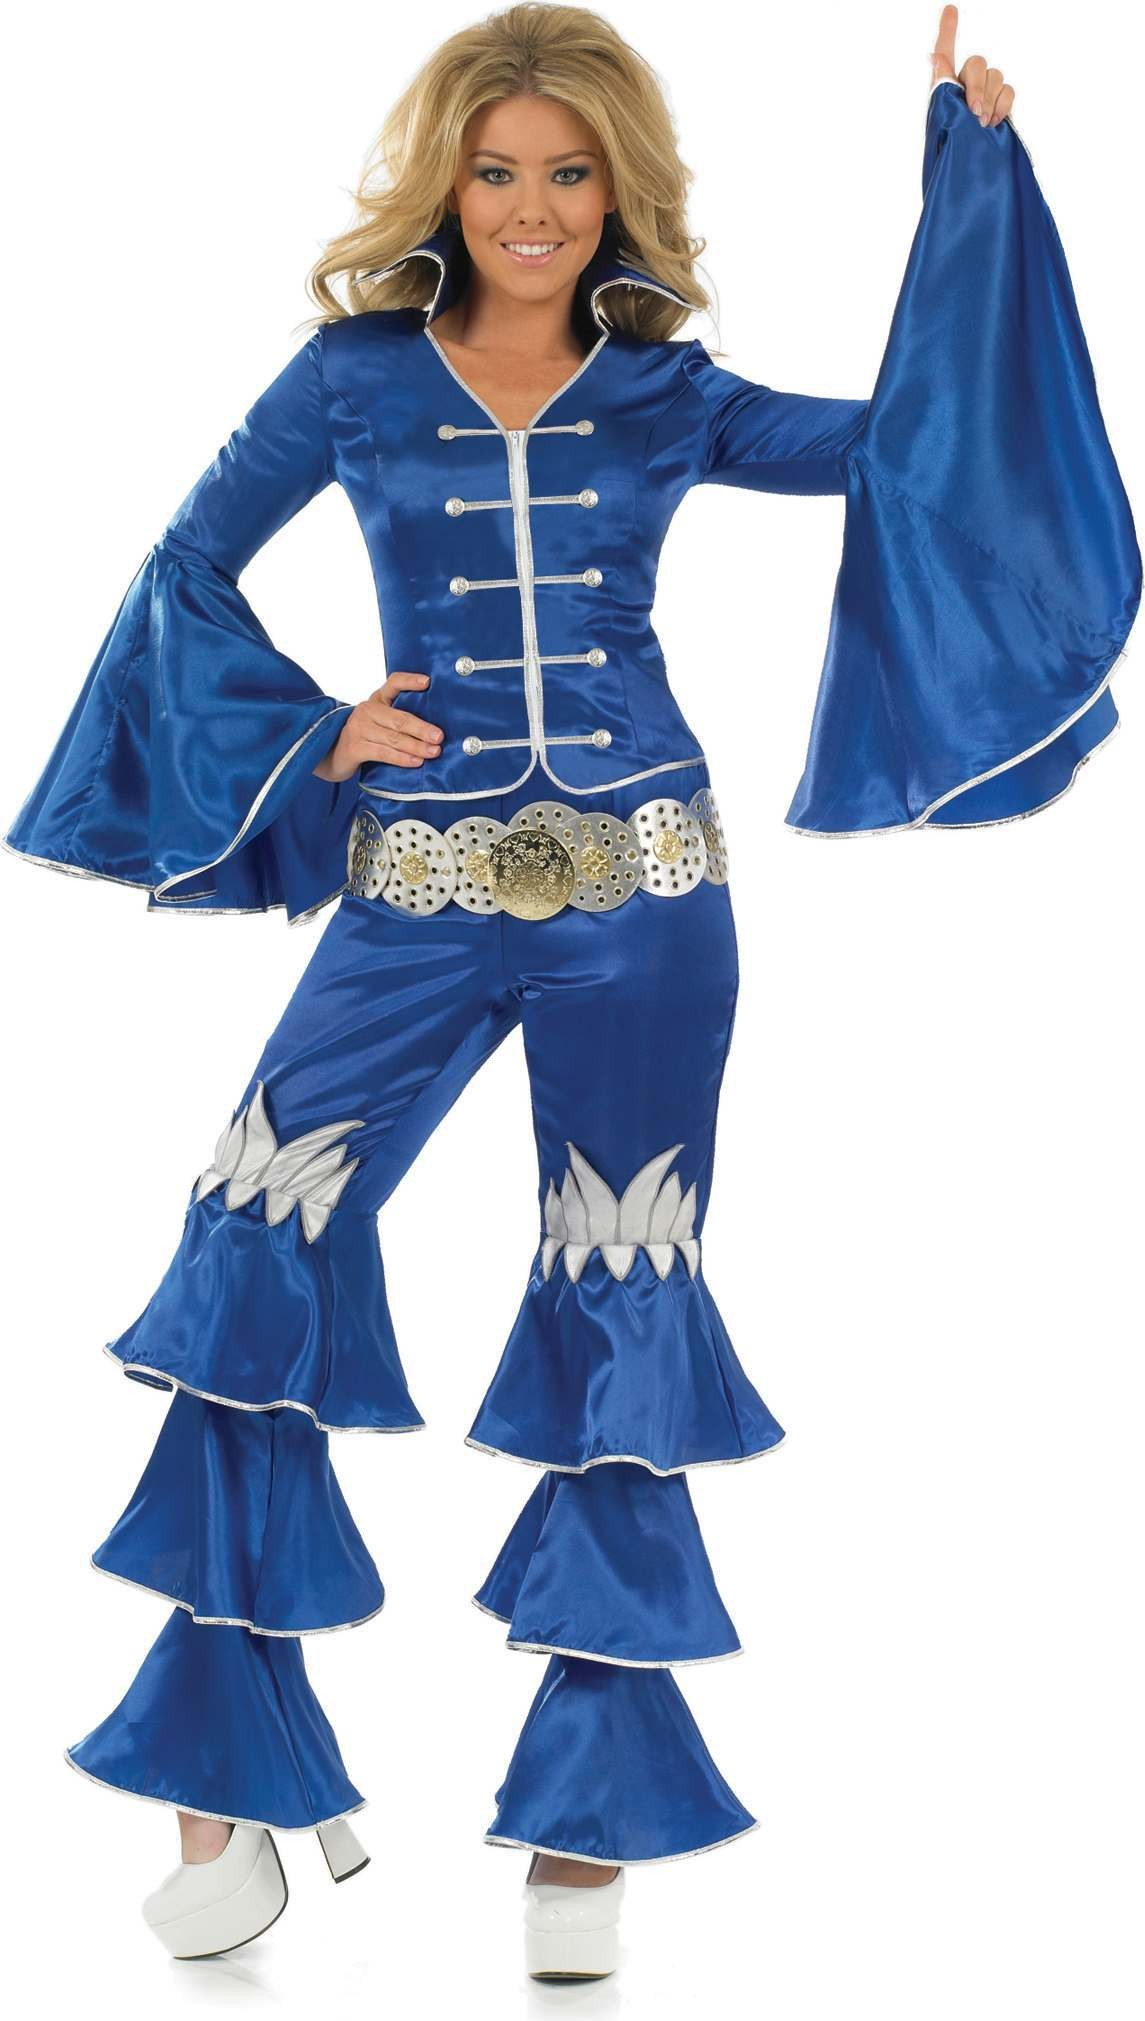 Blue Dancing Queen Fancy Dress Costume